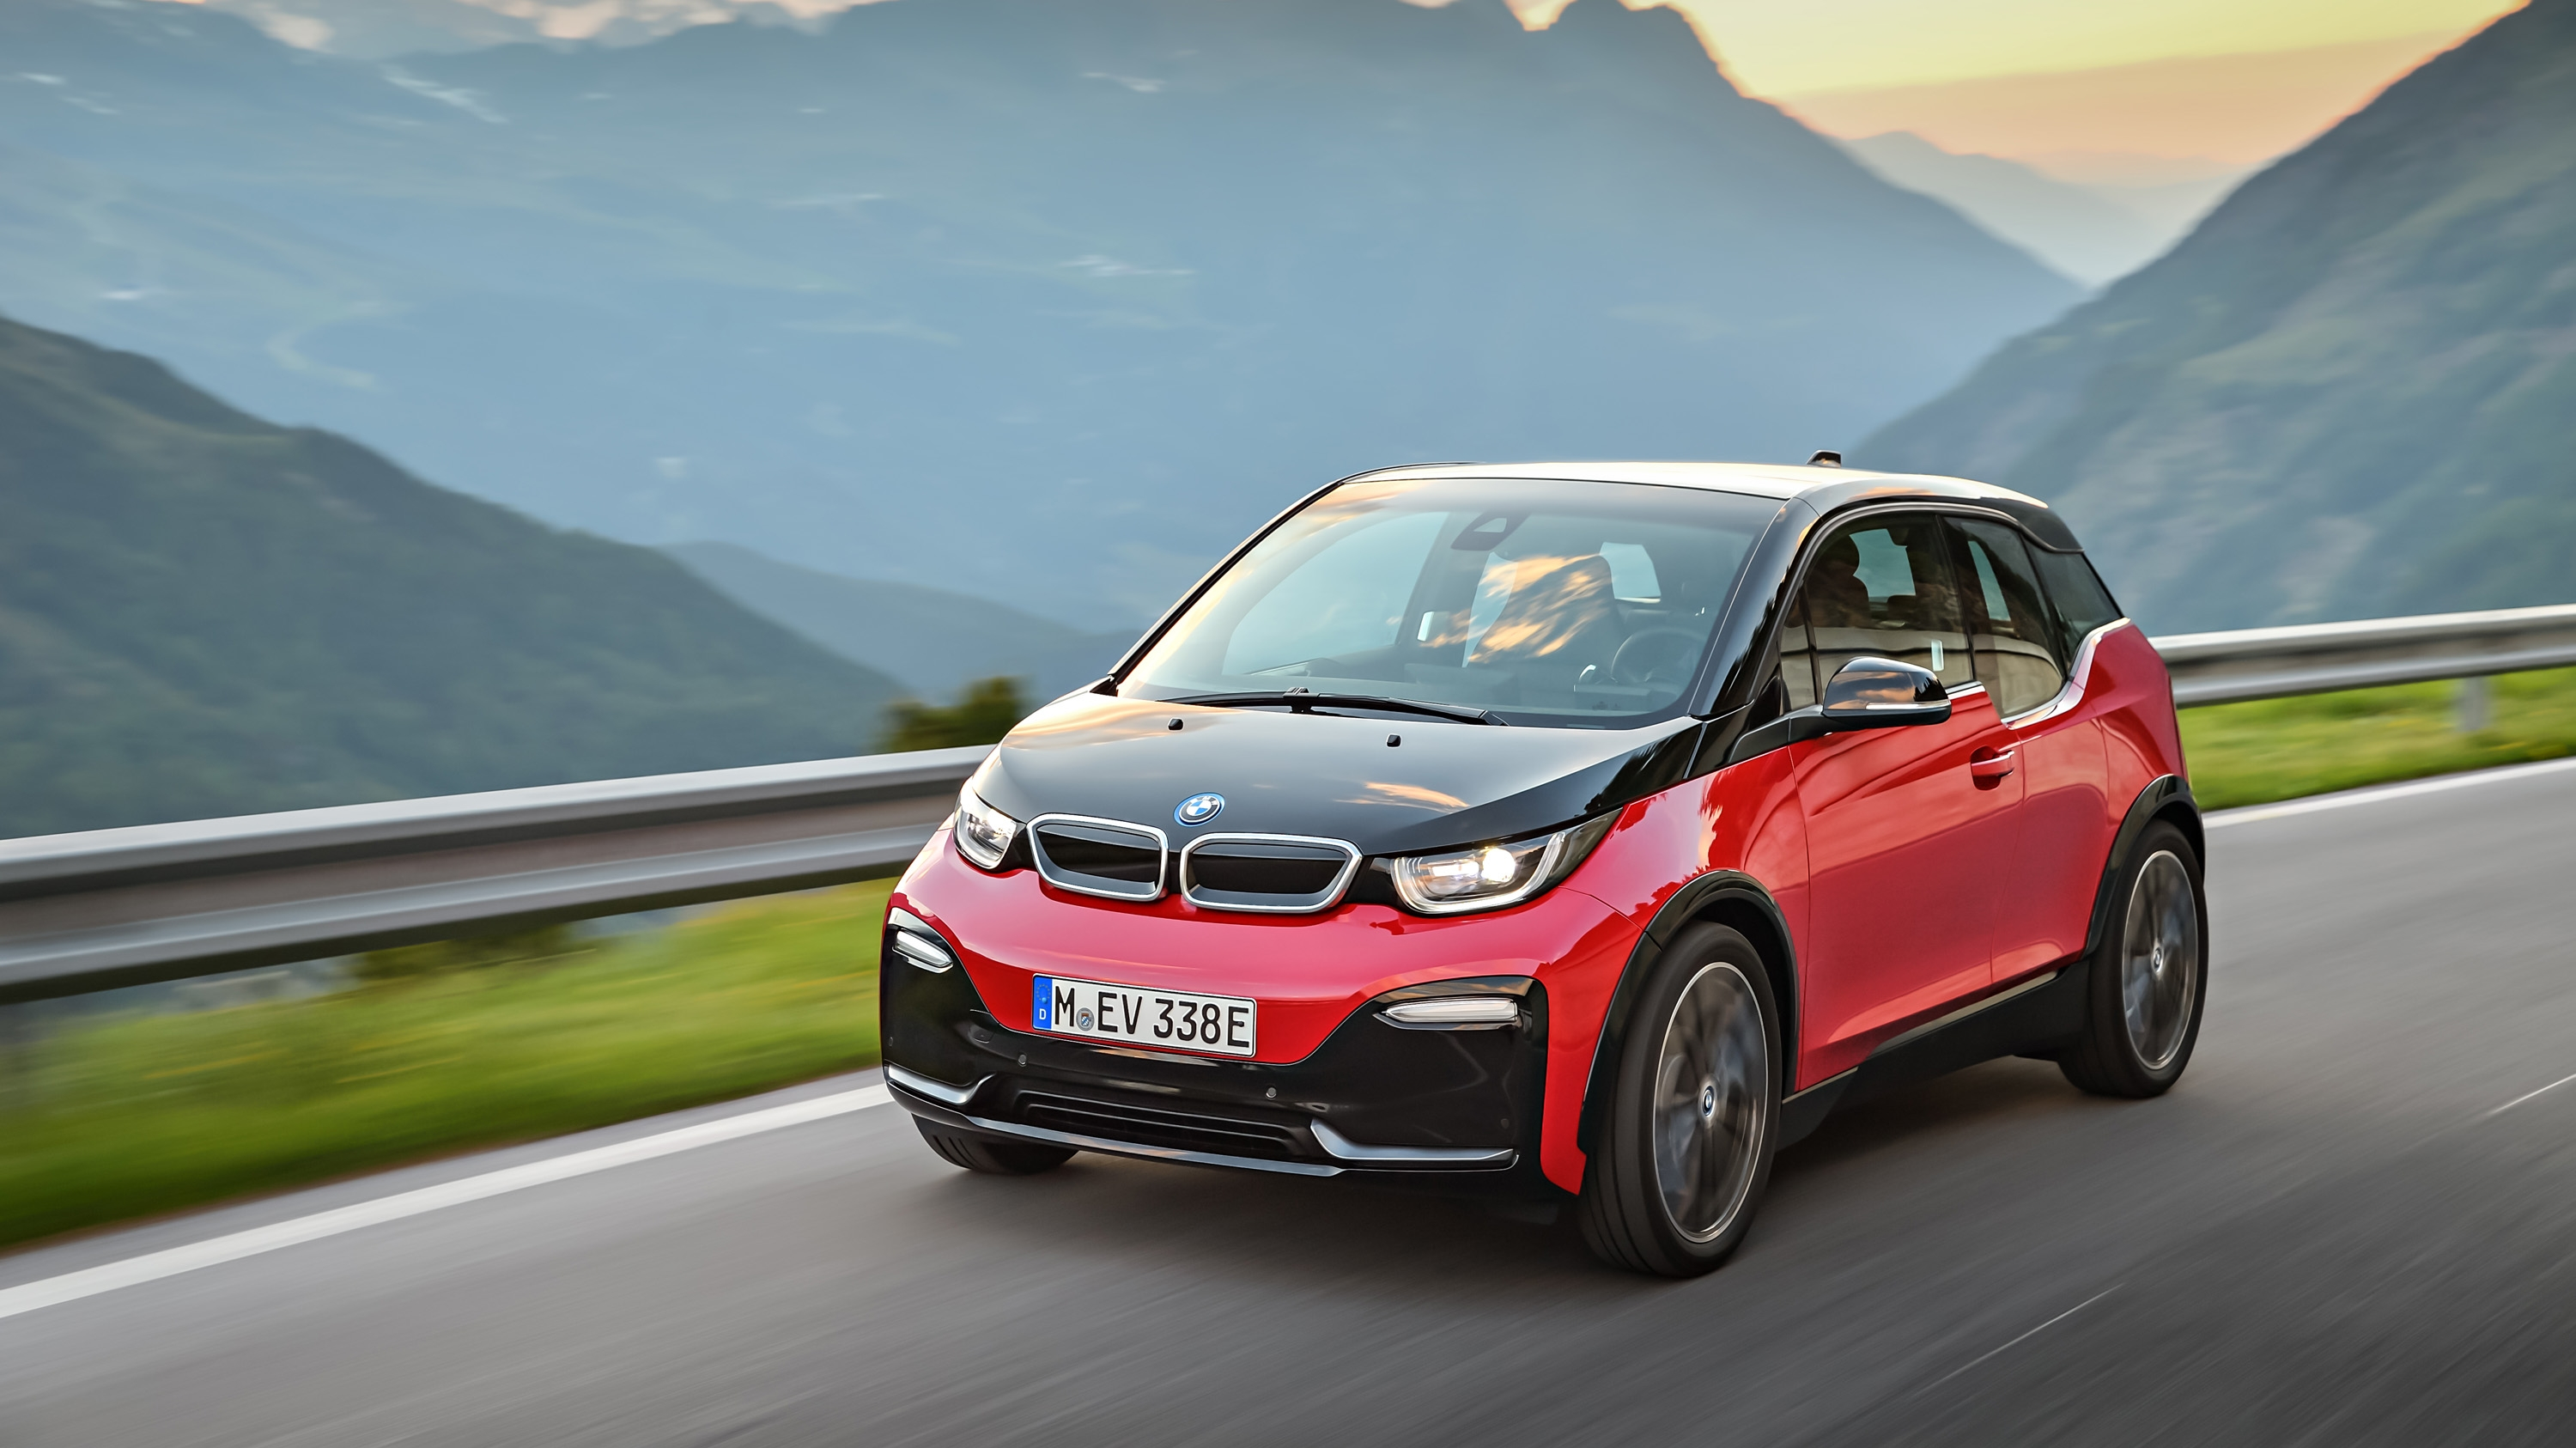 Smart Car Rental >> Daimler And BMW To Join Forces On The Mobility Front News - Top Speed